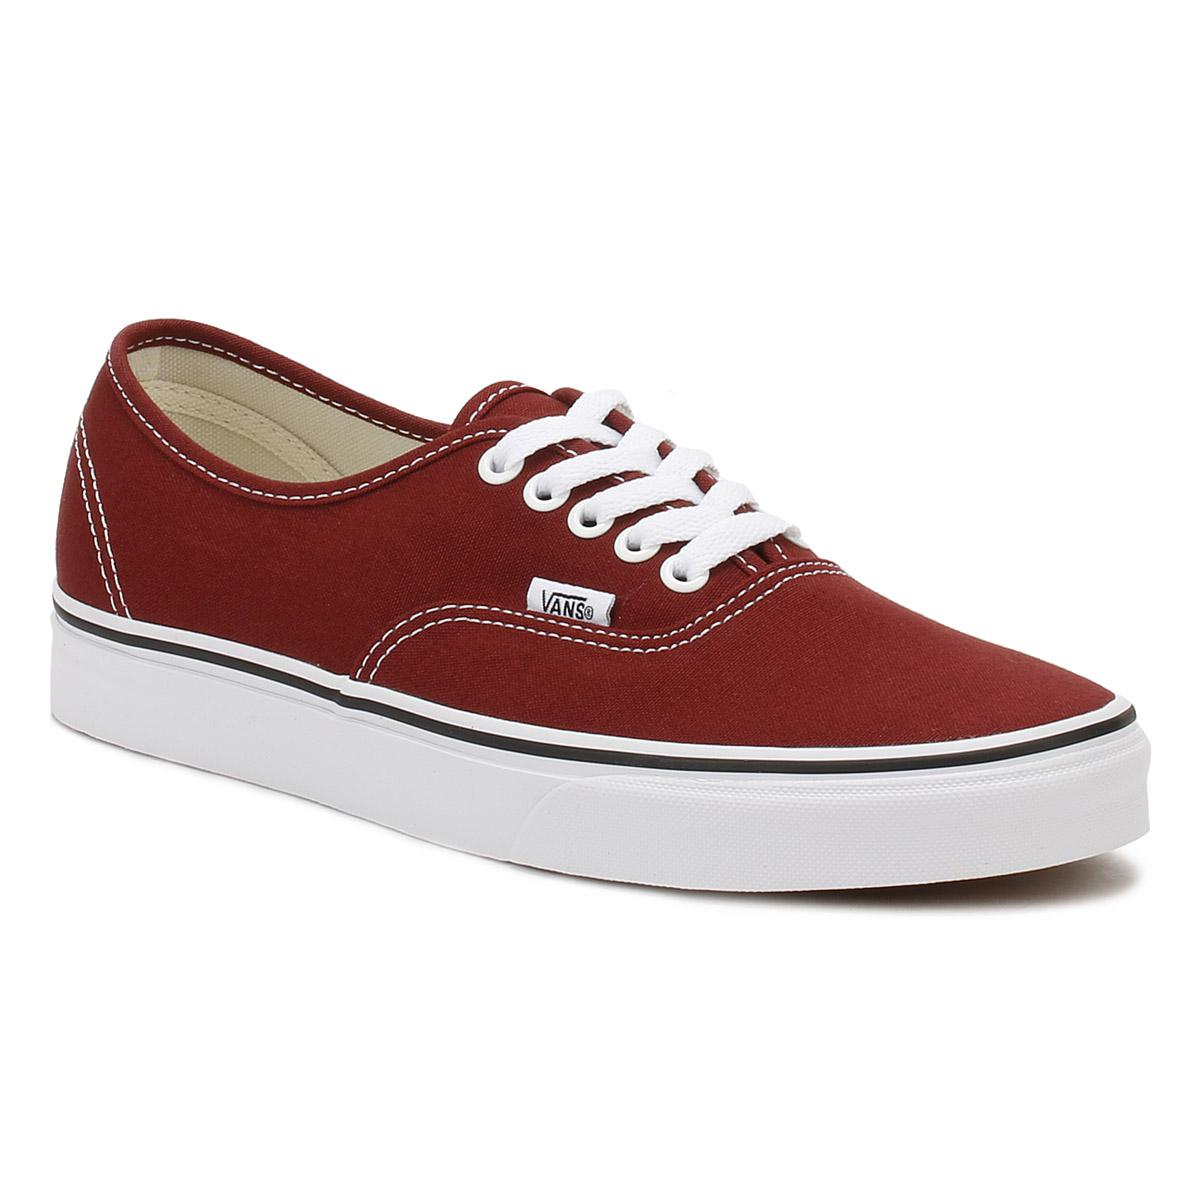 Vans. Mens Madder Brown / True White Authentic Trainers